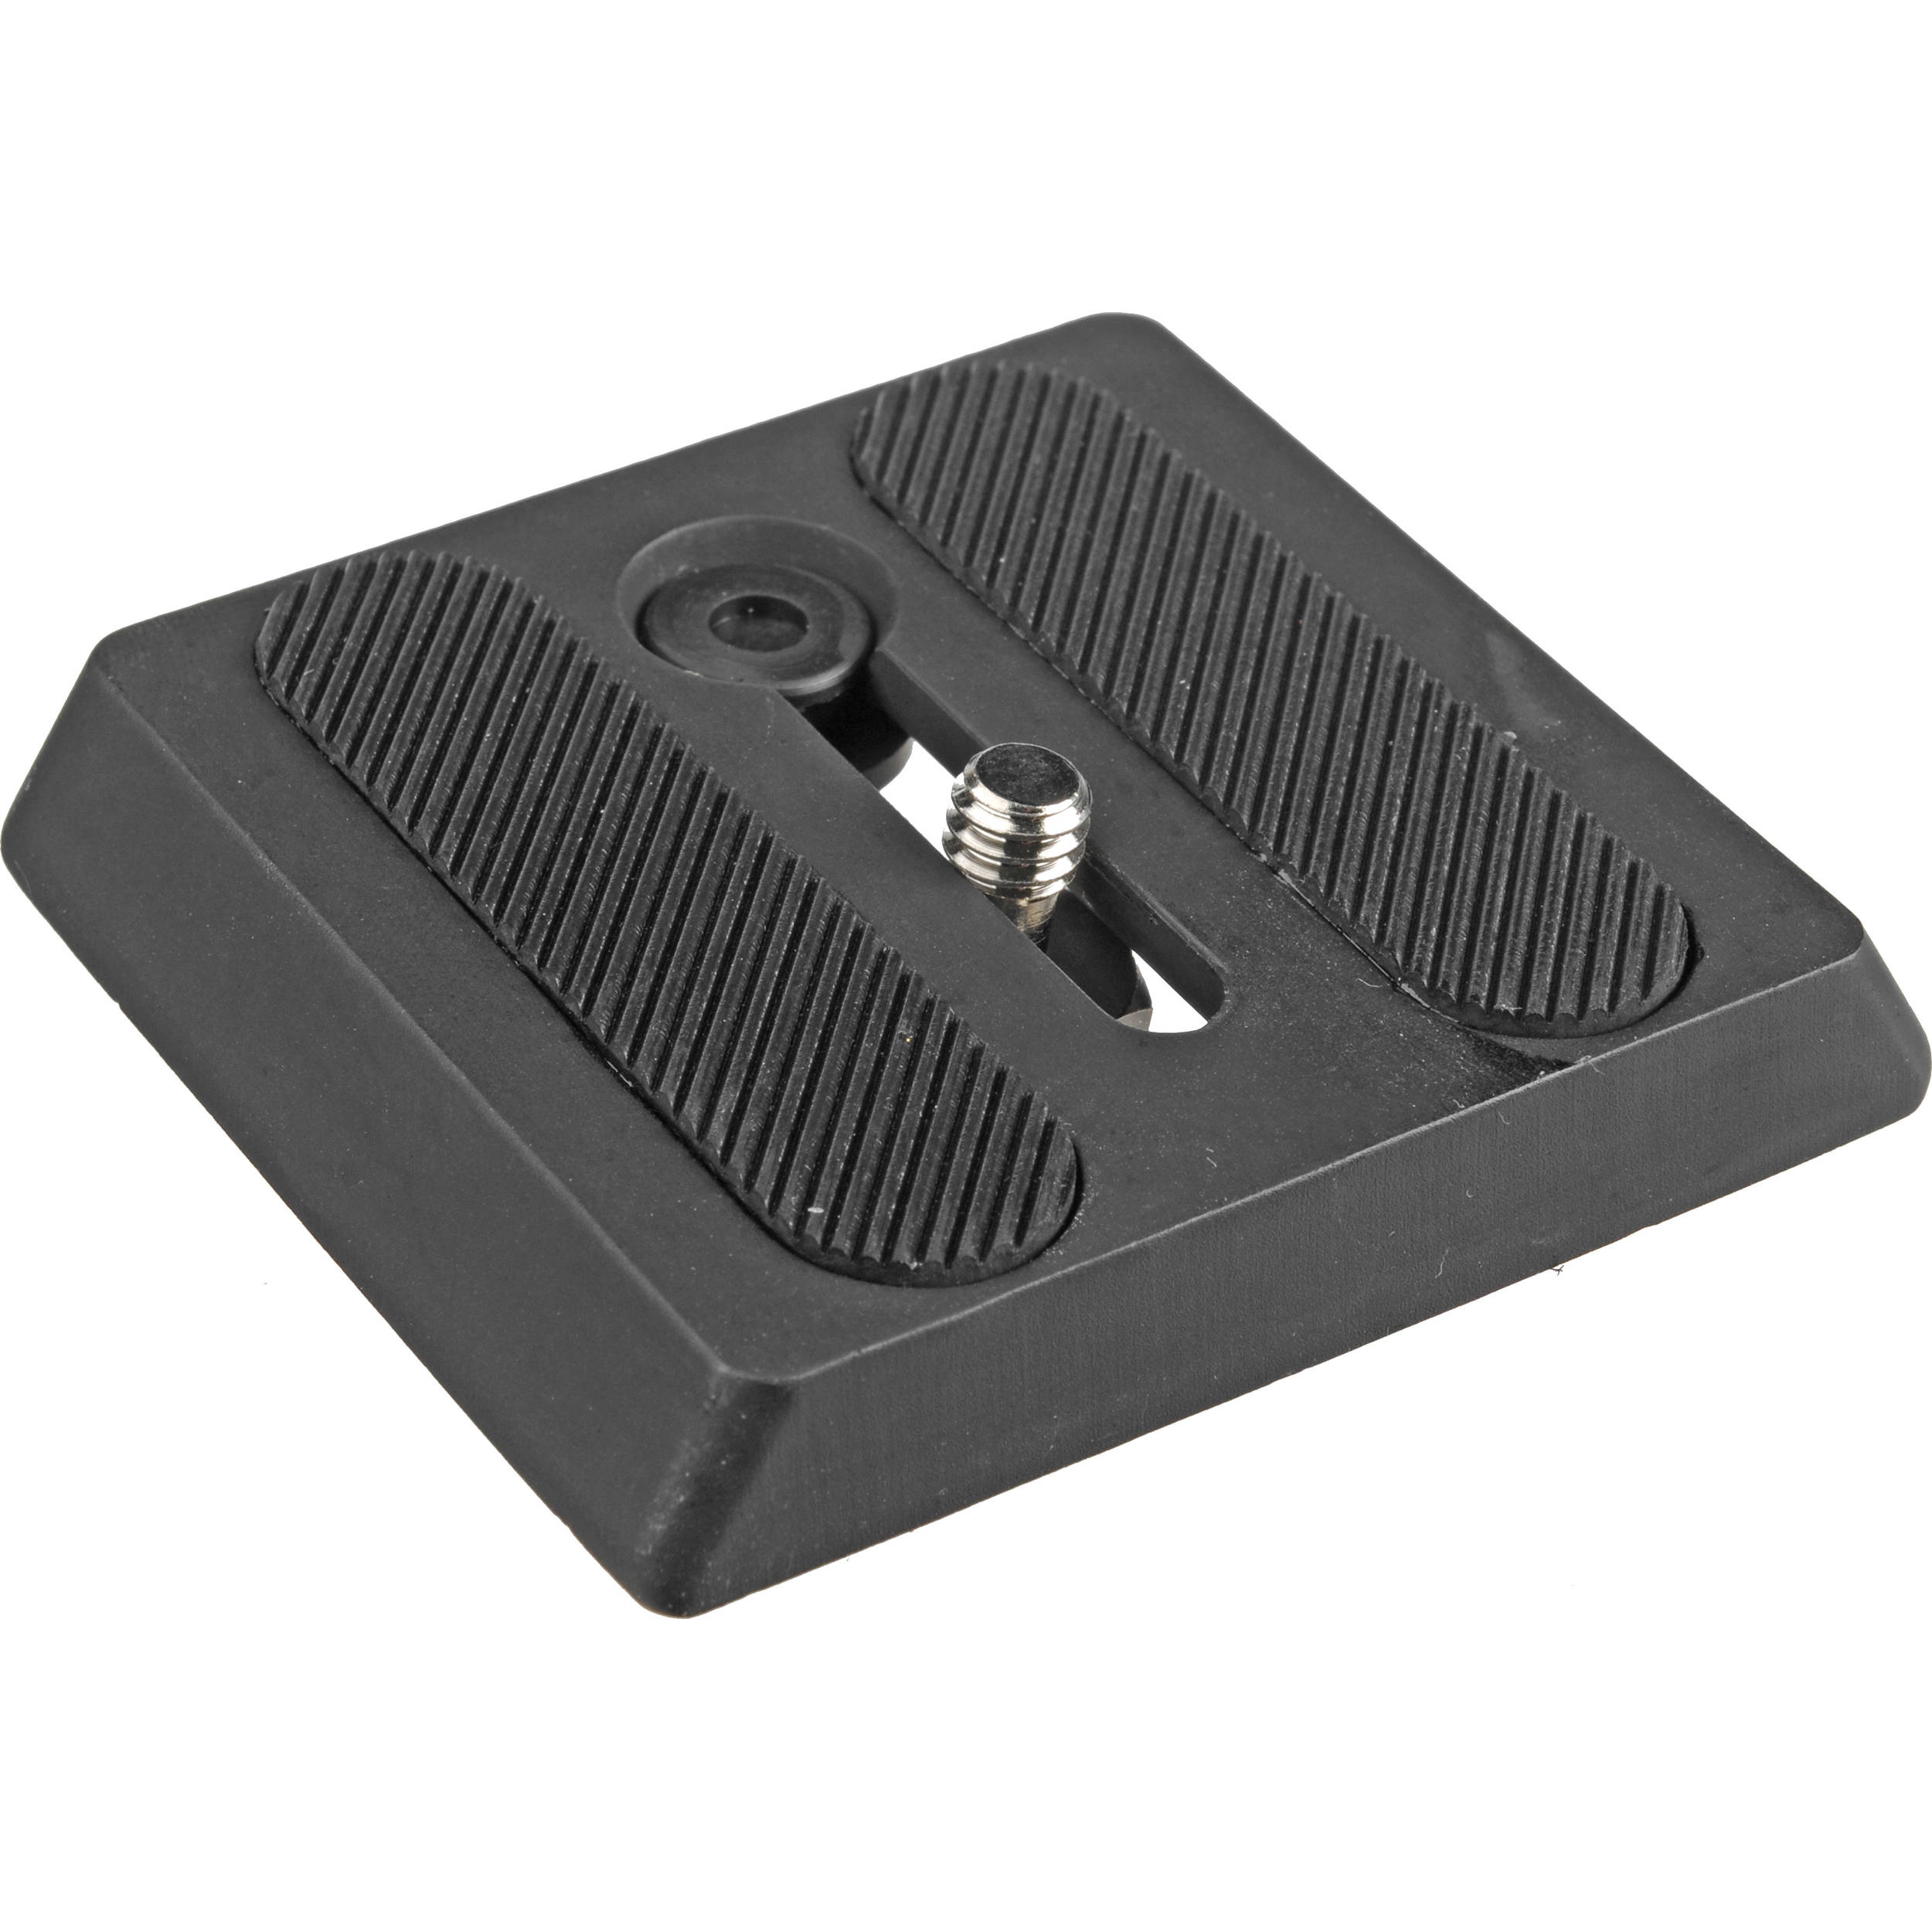 Benro Quick Release Plate for HD3